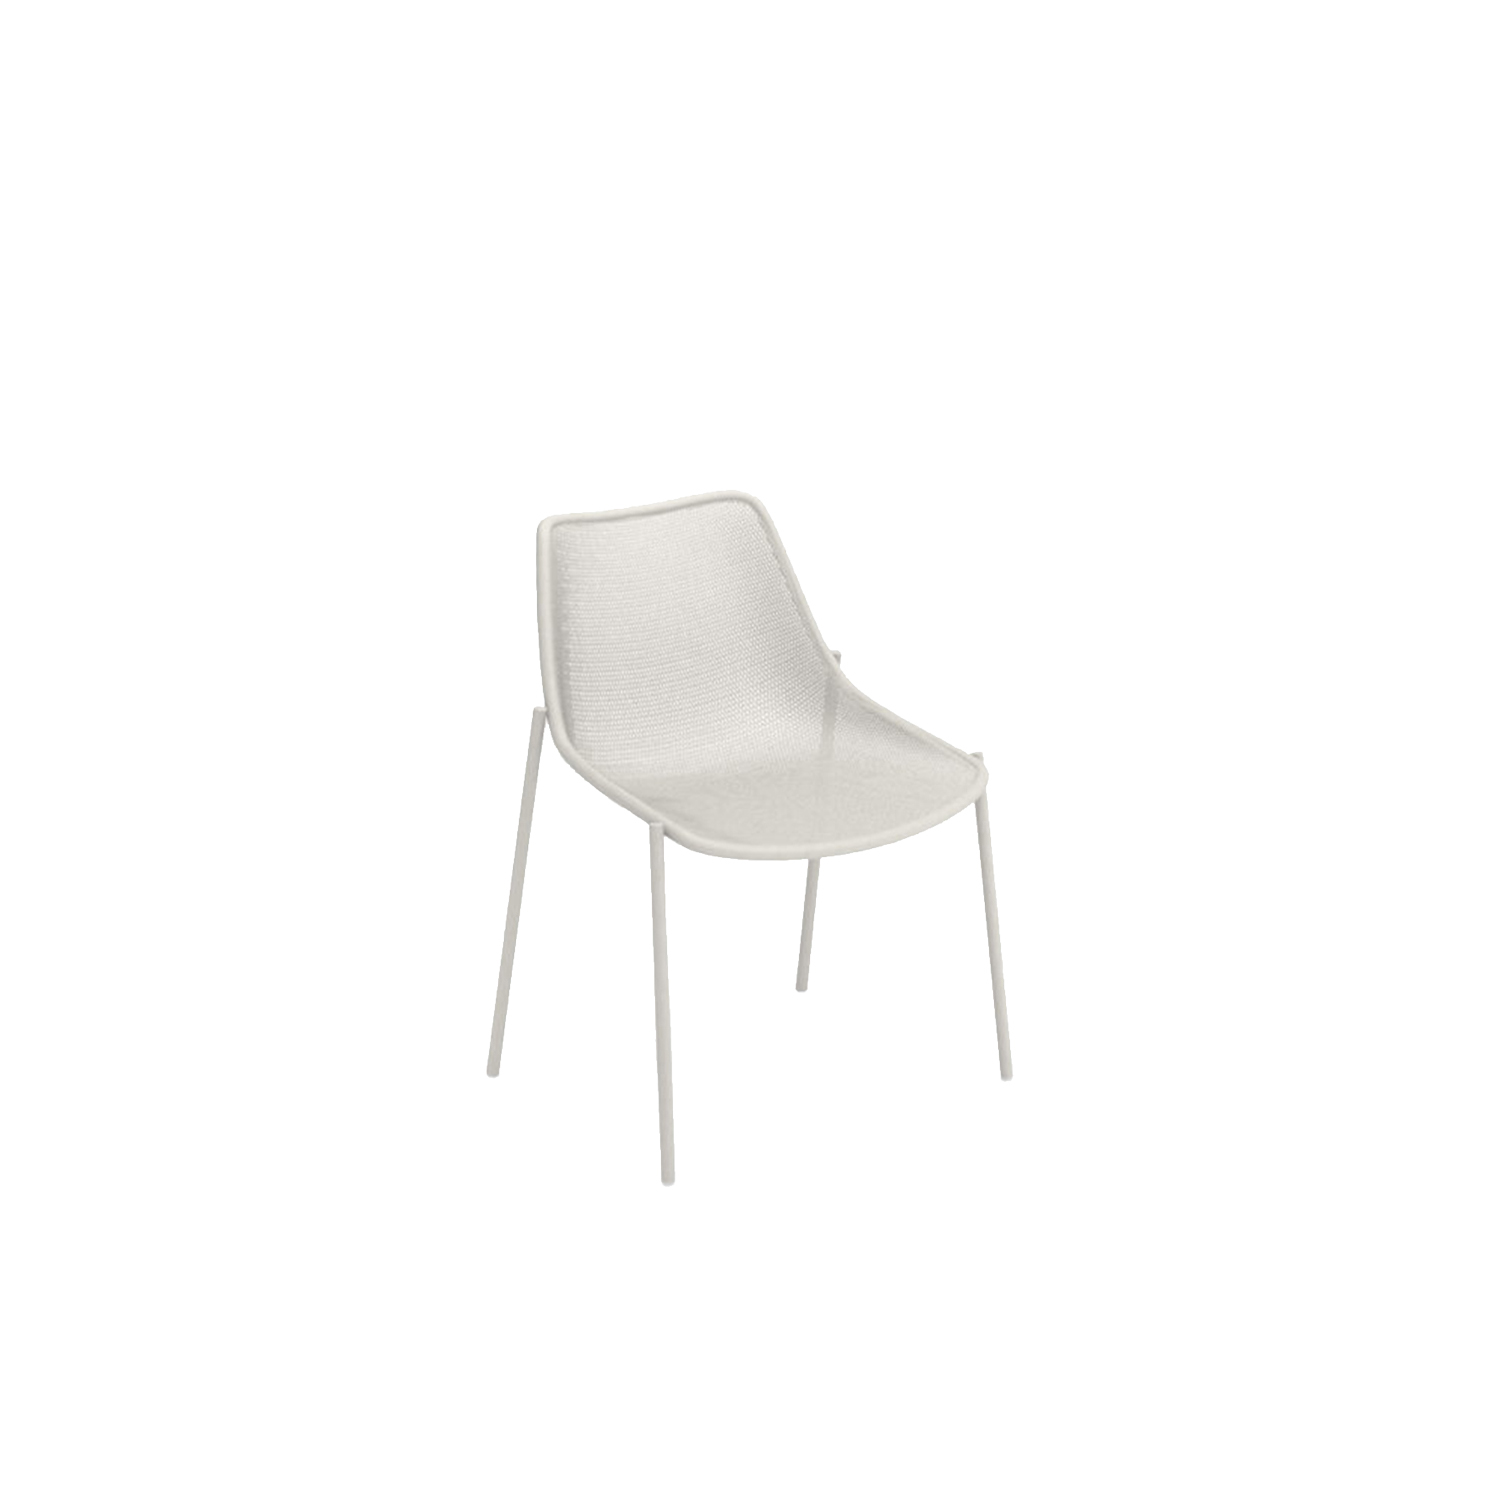 Round Dining Chair - Set of 4 - With its sleek design and option of four finishes this steel chair fits into most outdoor spaces. It is stackable so is easily stored during winter months and comes in a set of four. 